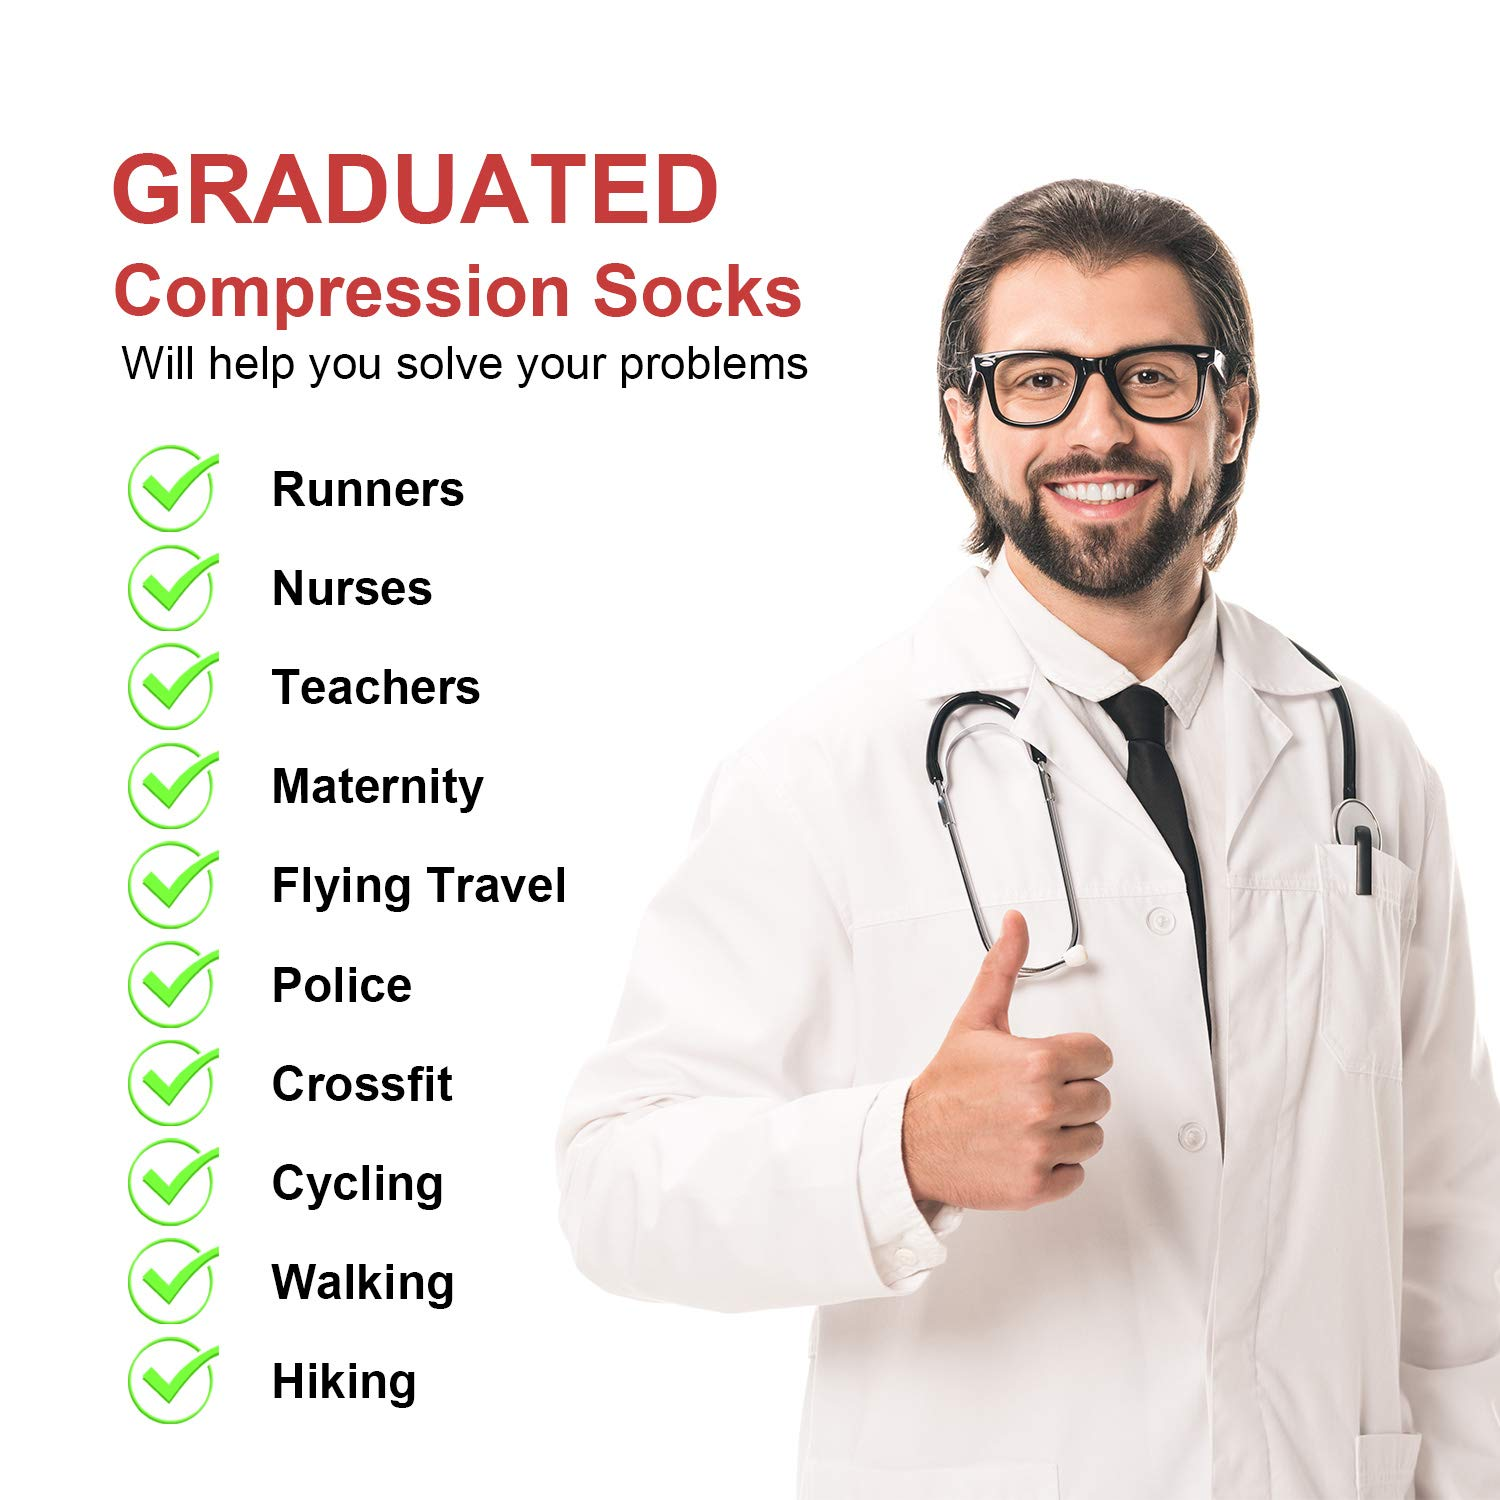 Circulation /& Recovery Boost Stamina Varicose Veins 2 Pairs Compression Socks for Men /& Women Best Graduated Athletic Fit for Running Flight Travel Pregnancy Flying Nurses Medical Shin Splints